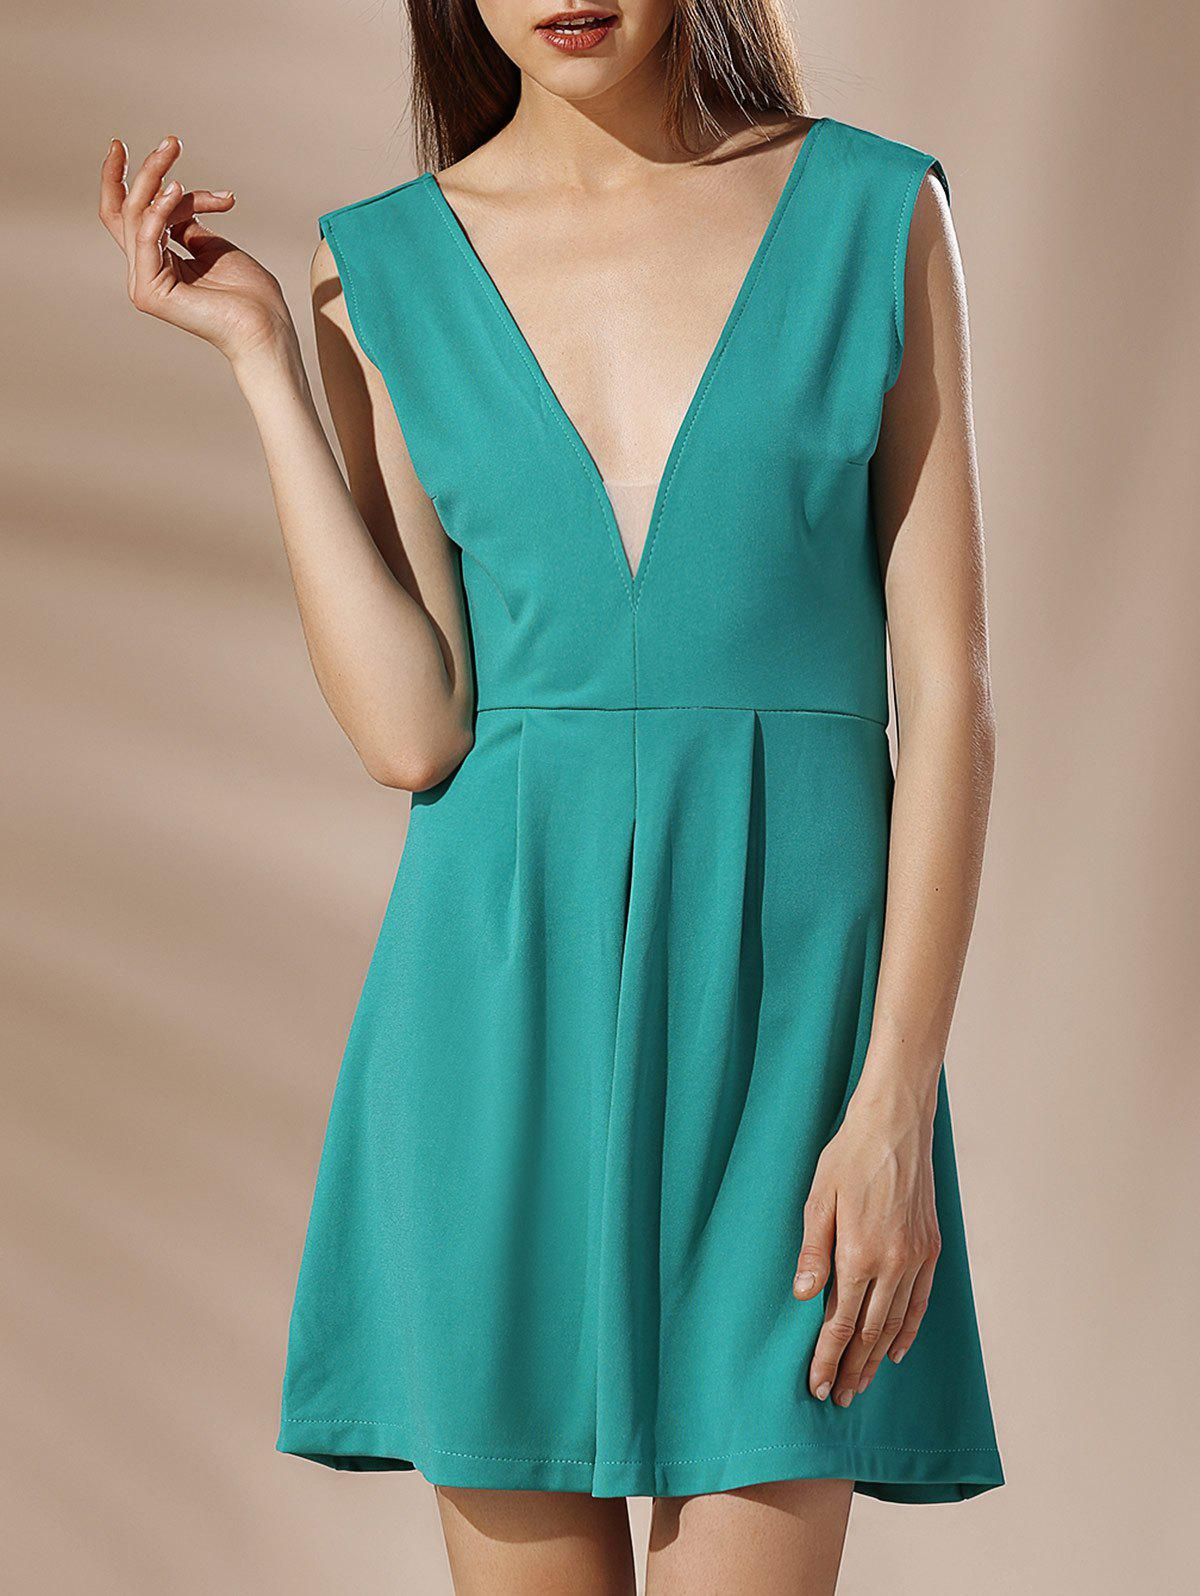 Mini Low Cut Backless A Line Dress - GREEN L